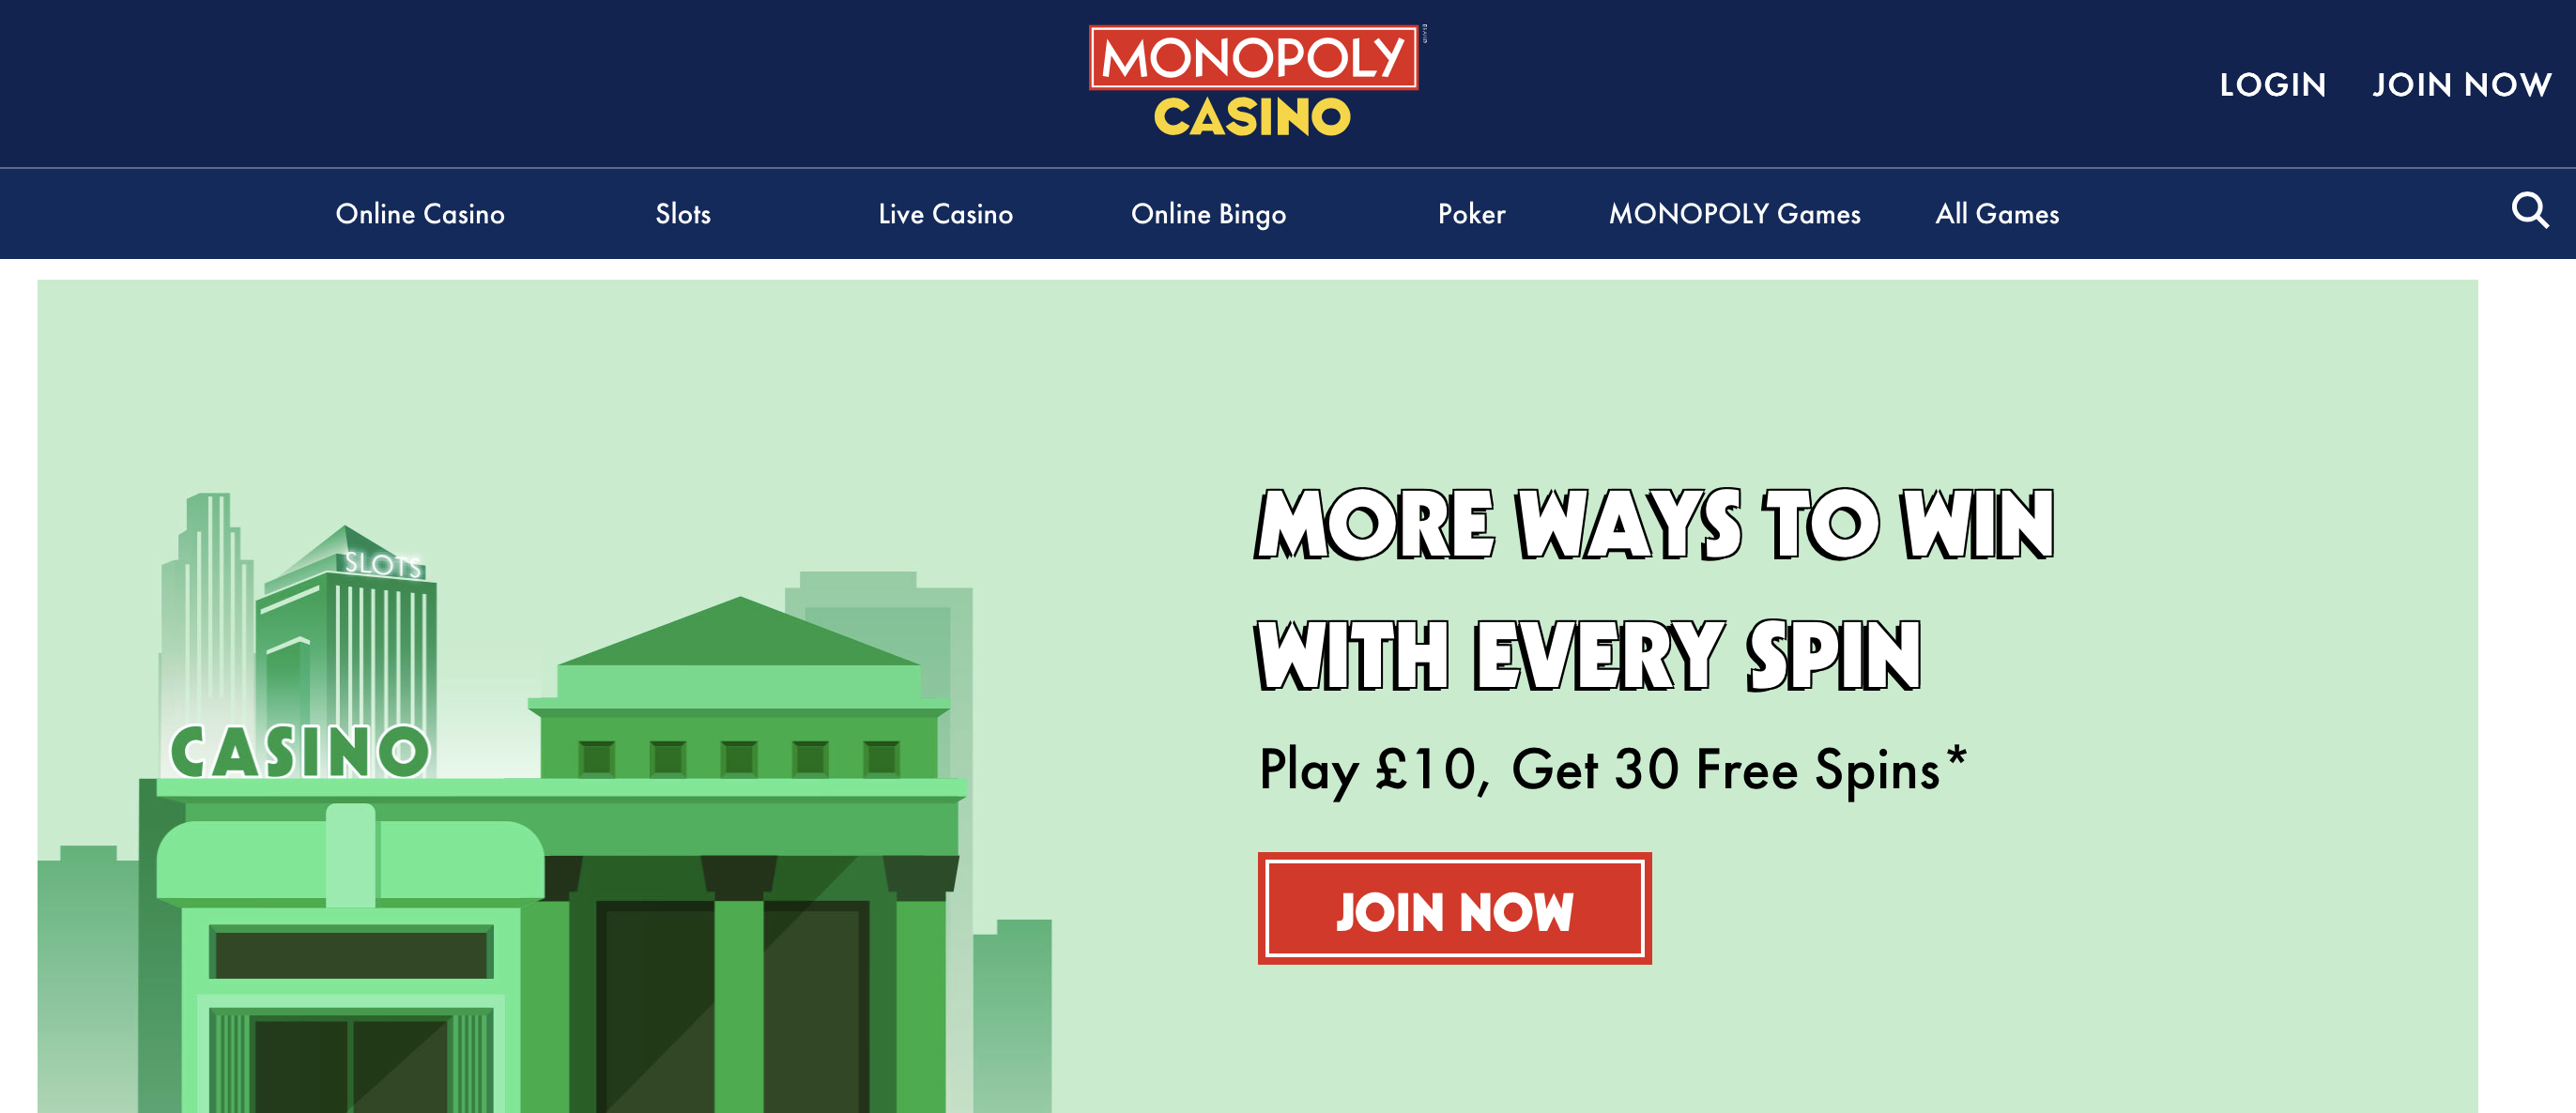 How to Play Monopoly Casino Online